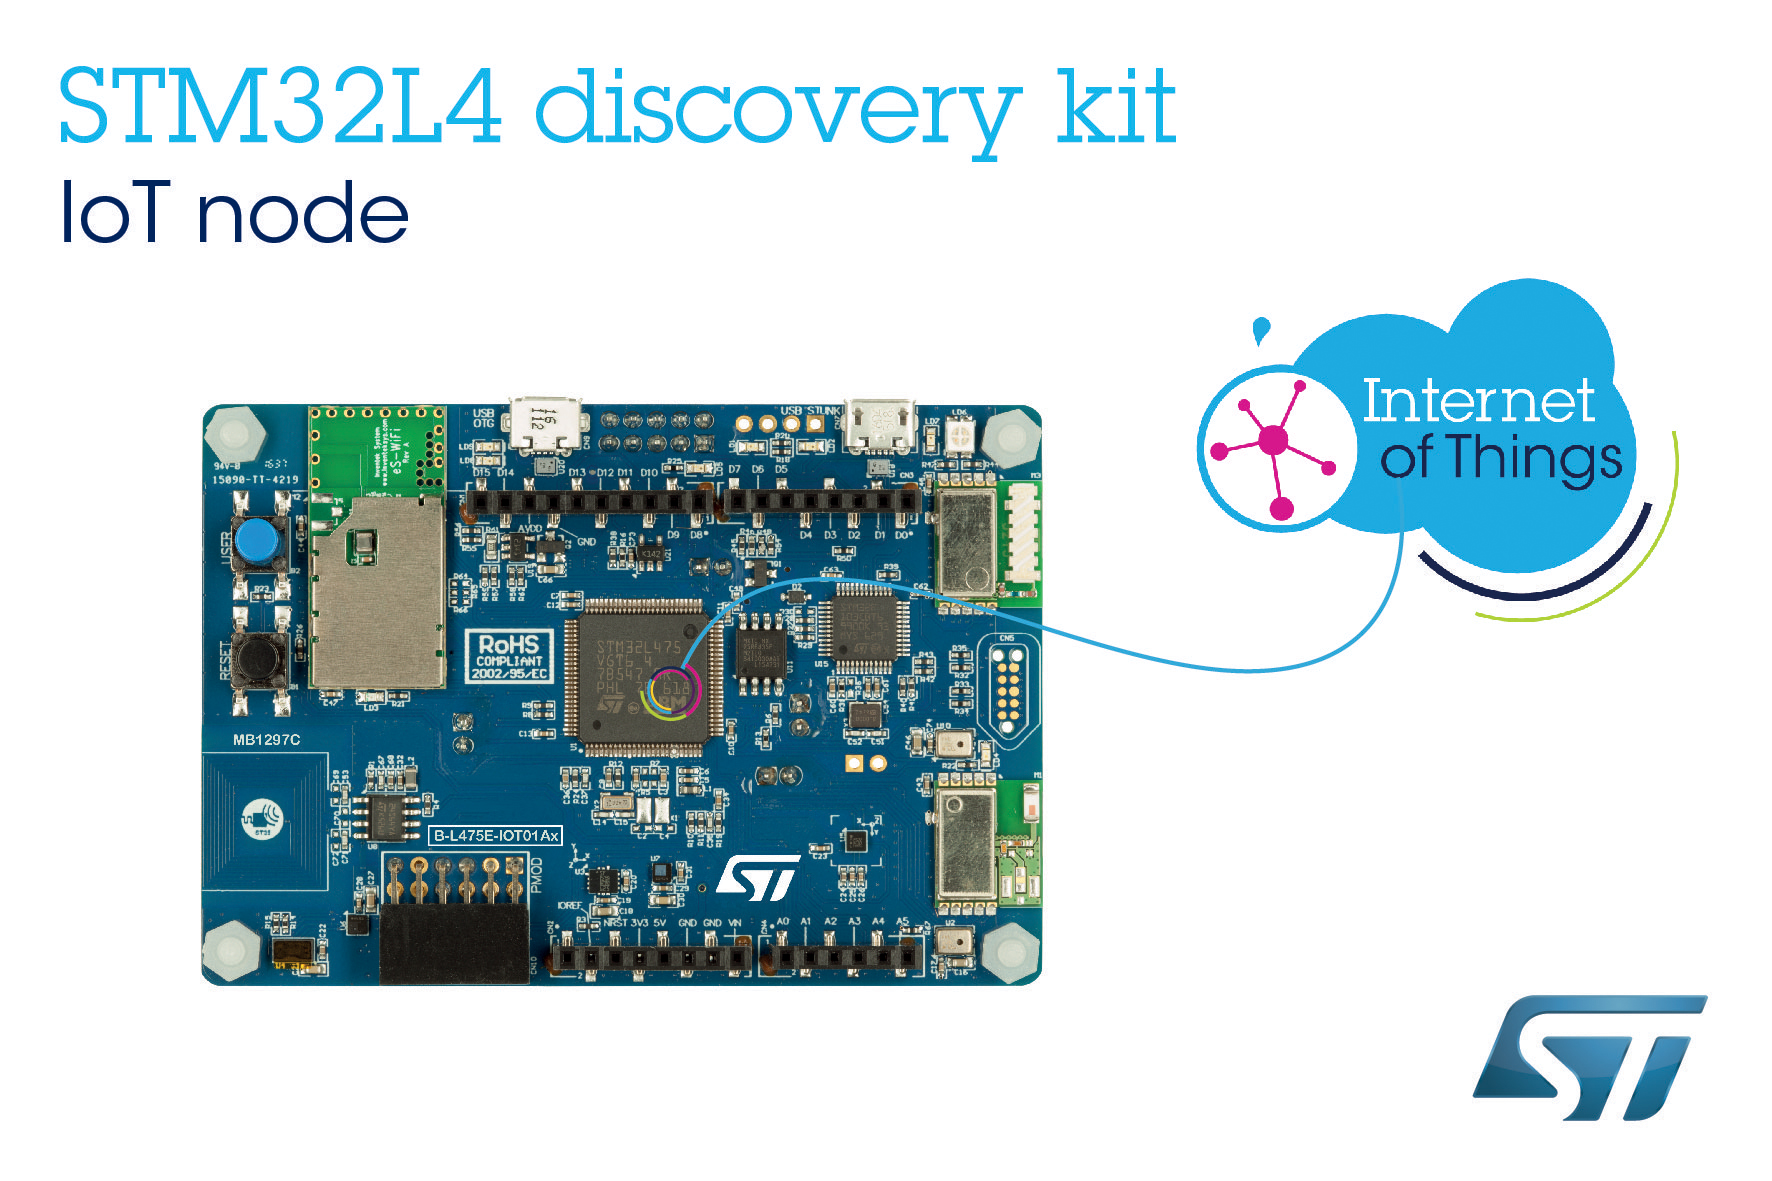 Affordable STM32 Cloud-Connectable Kit from